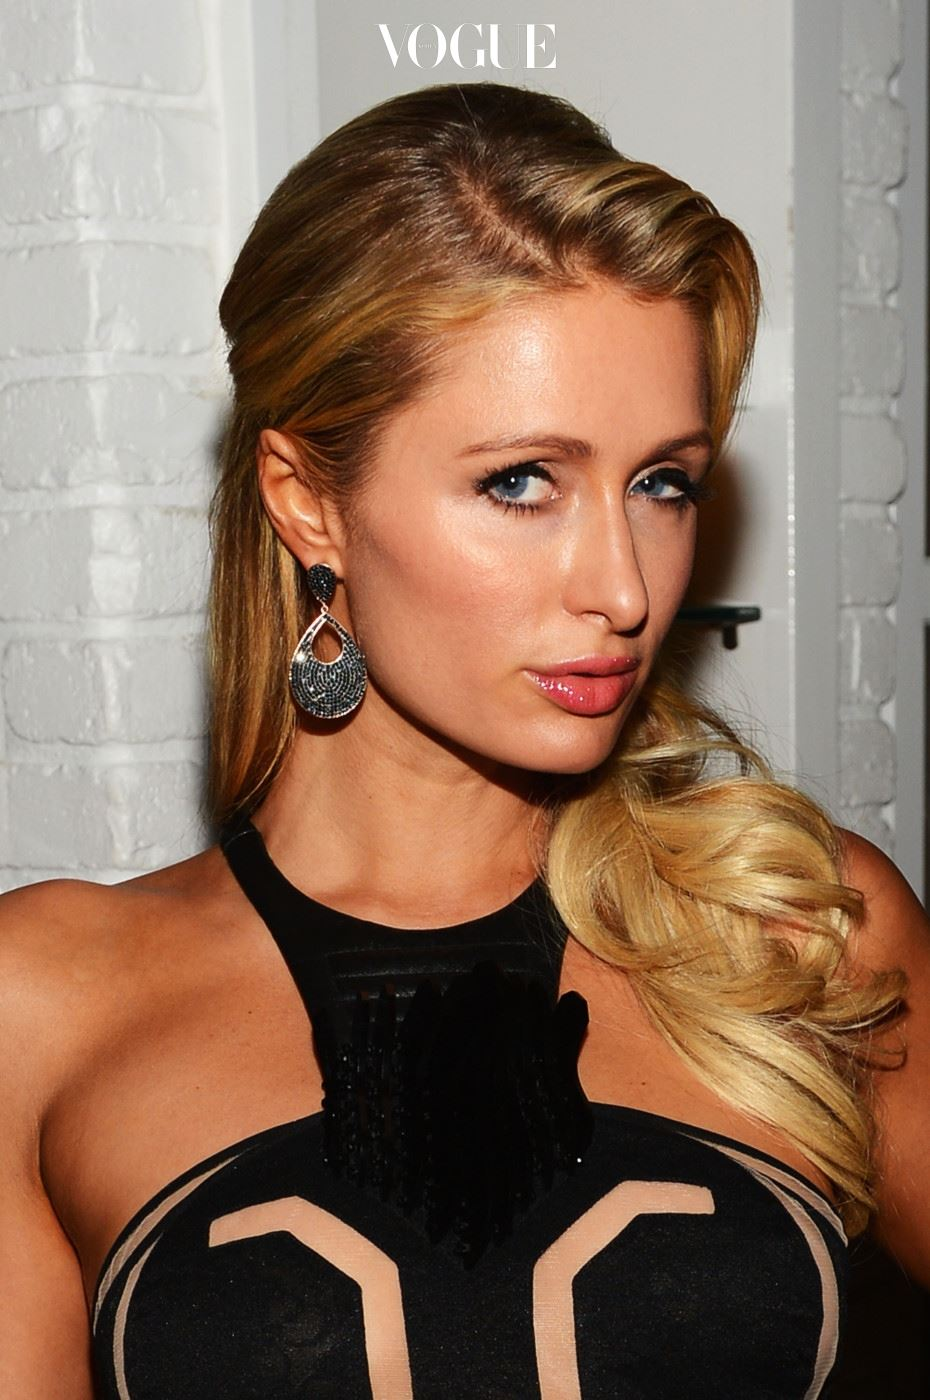 MIAMI, FL - DECEMBER 06:  Paris Hilton attends the Aby Rosen & Samantha Boardman dinner at The Dutch on December 6, 2012 in Miami, Florida.  (Photo by Dimitrios Kambouris/Getty Images for Dom Perignon)